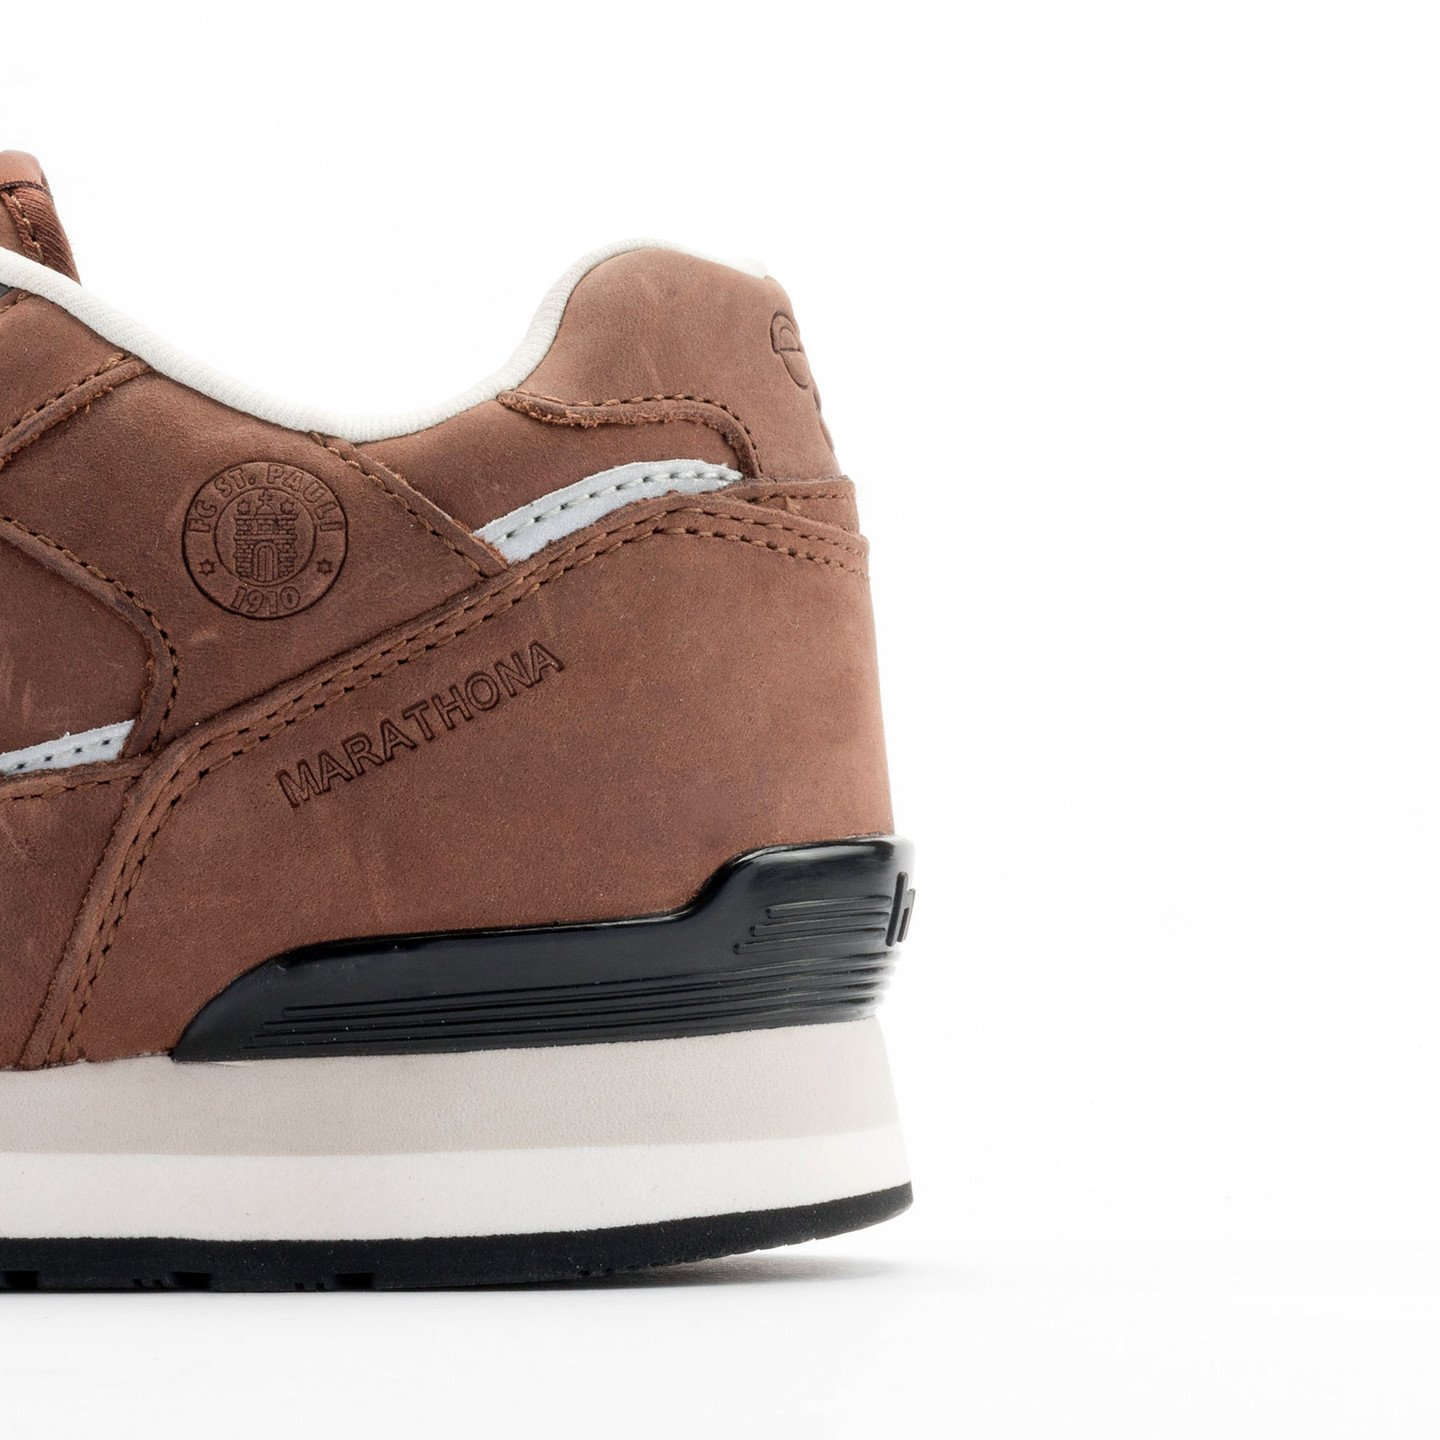 Hummel Marathona Low x St.Pauli Dark Brown 63-821-8225-39